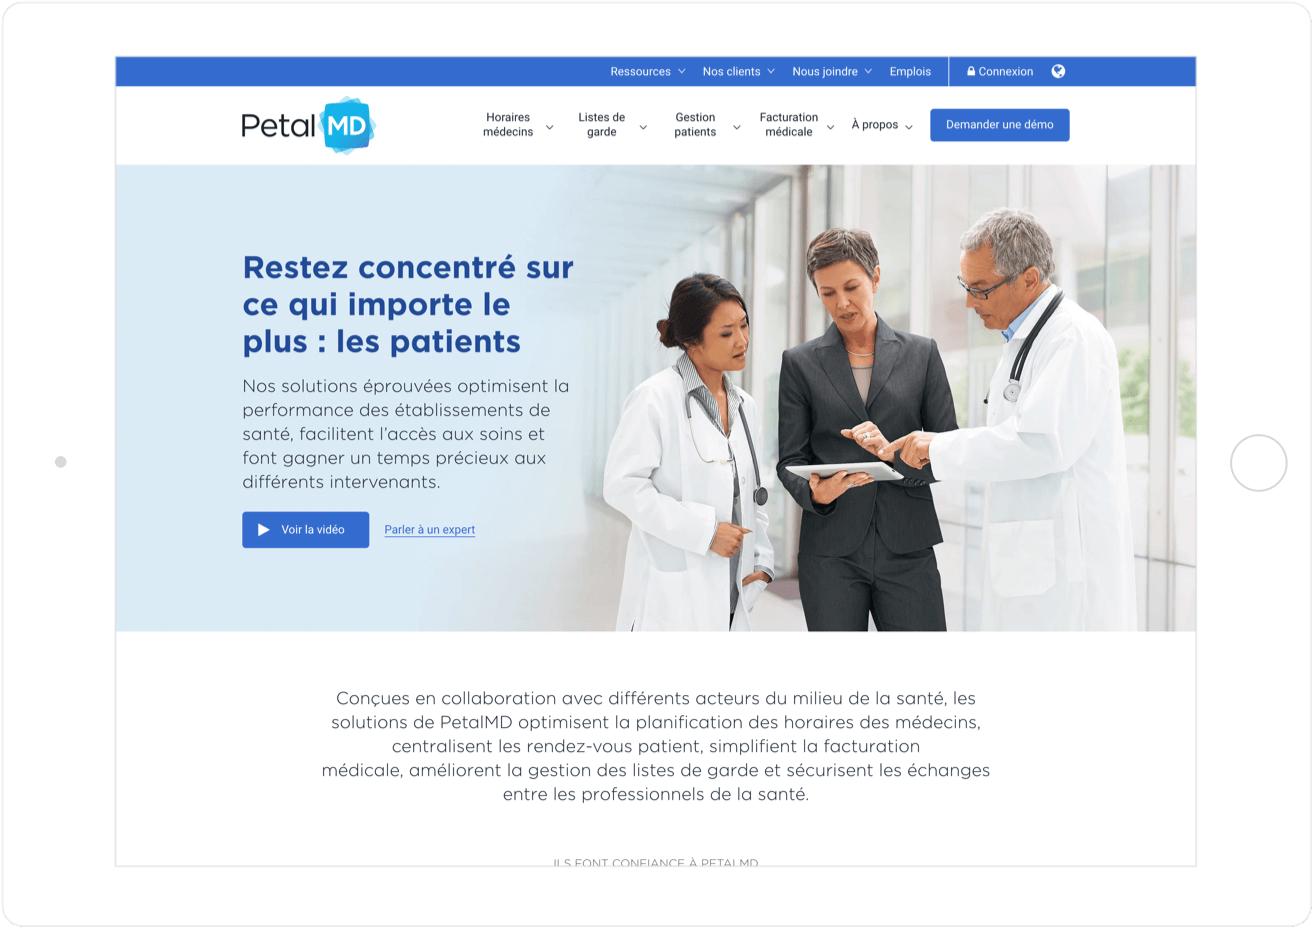 PetalMD bilingual website experience